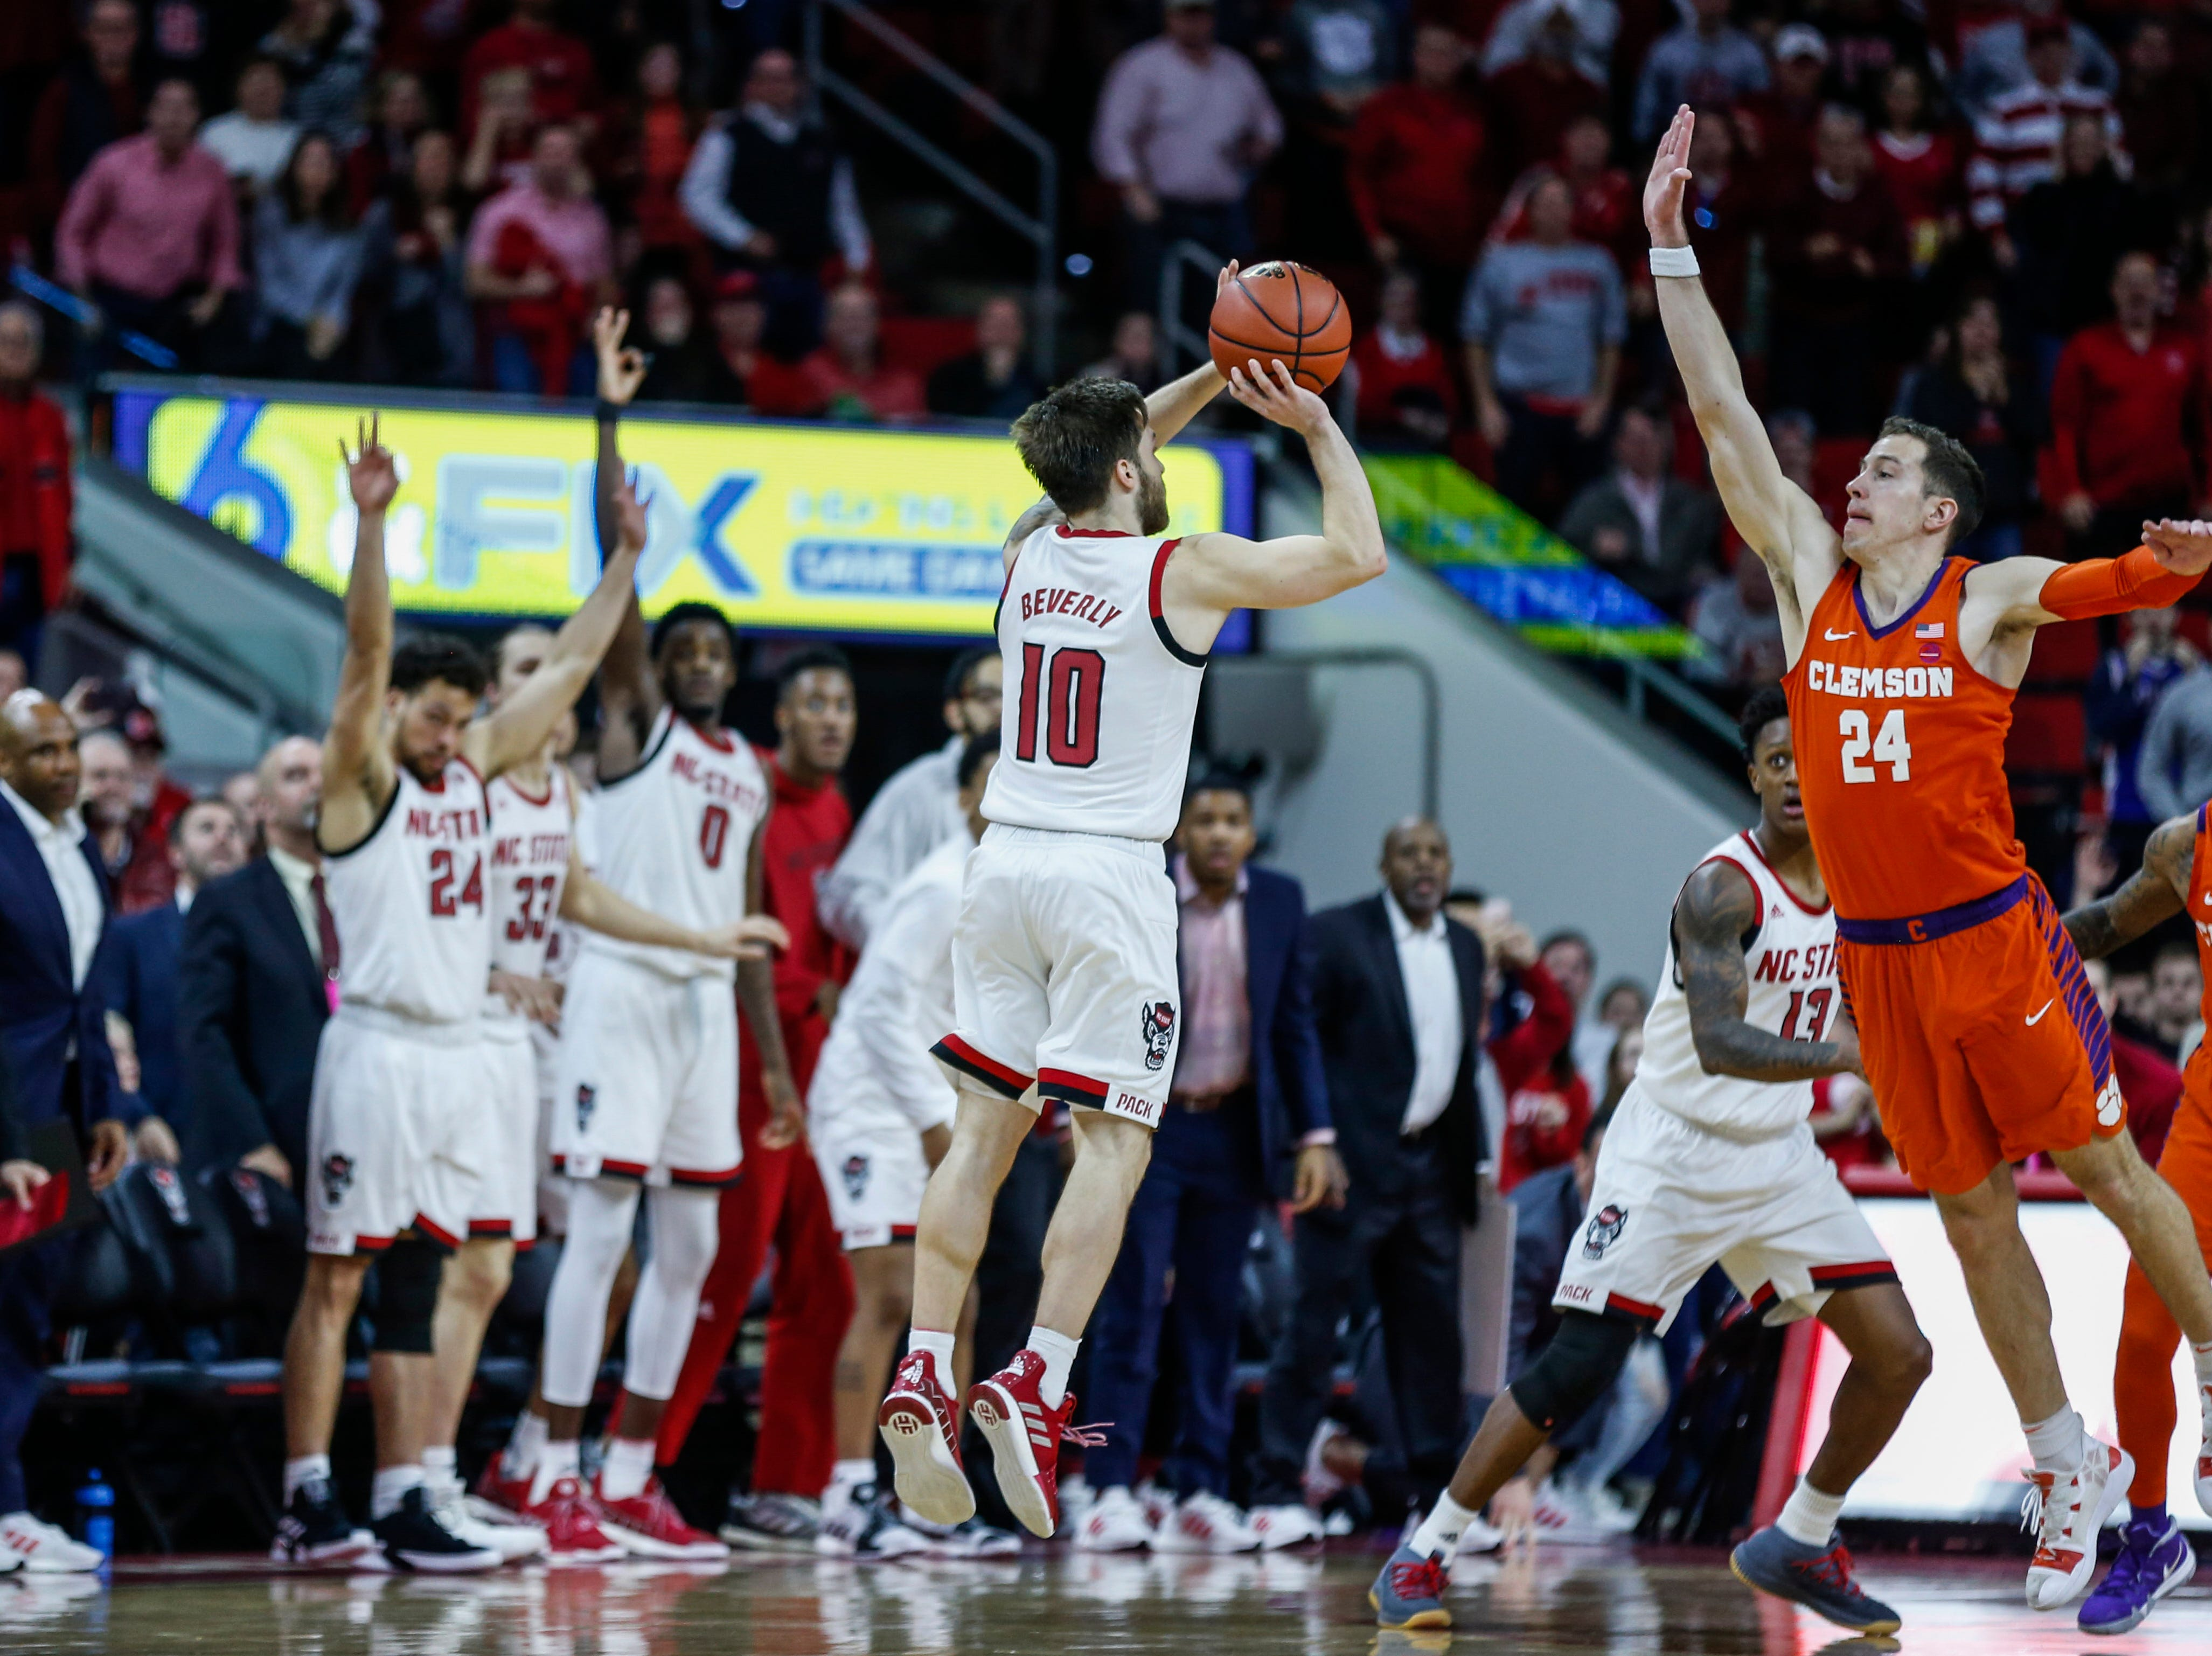 Jan 26, 2019; Raleigh, NC, USA; North Carolina State Wolfpack guard Braxton Beverly (10) shoots over a three-pointer over Clemson Tigers forward David Skara(24) as time expires in the second half at PNC Arena. Mandatory Credit: Nell Redmond-USA TODAY Sports